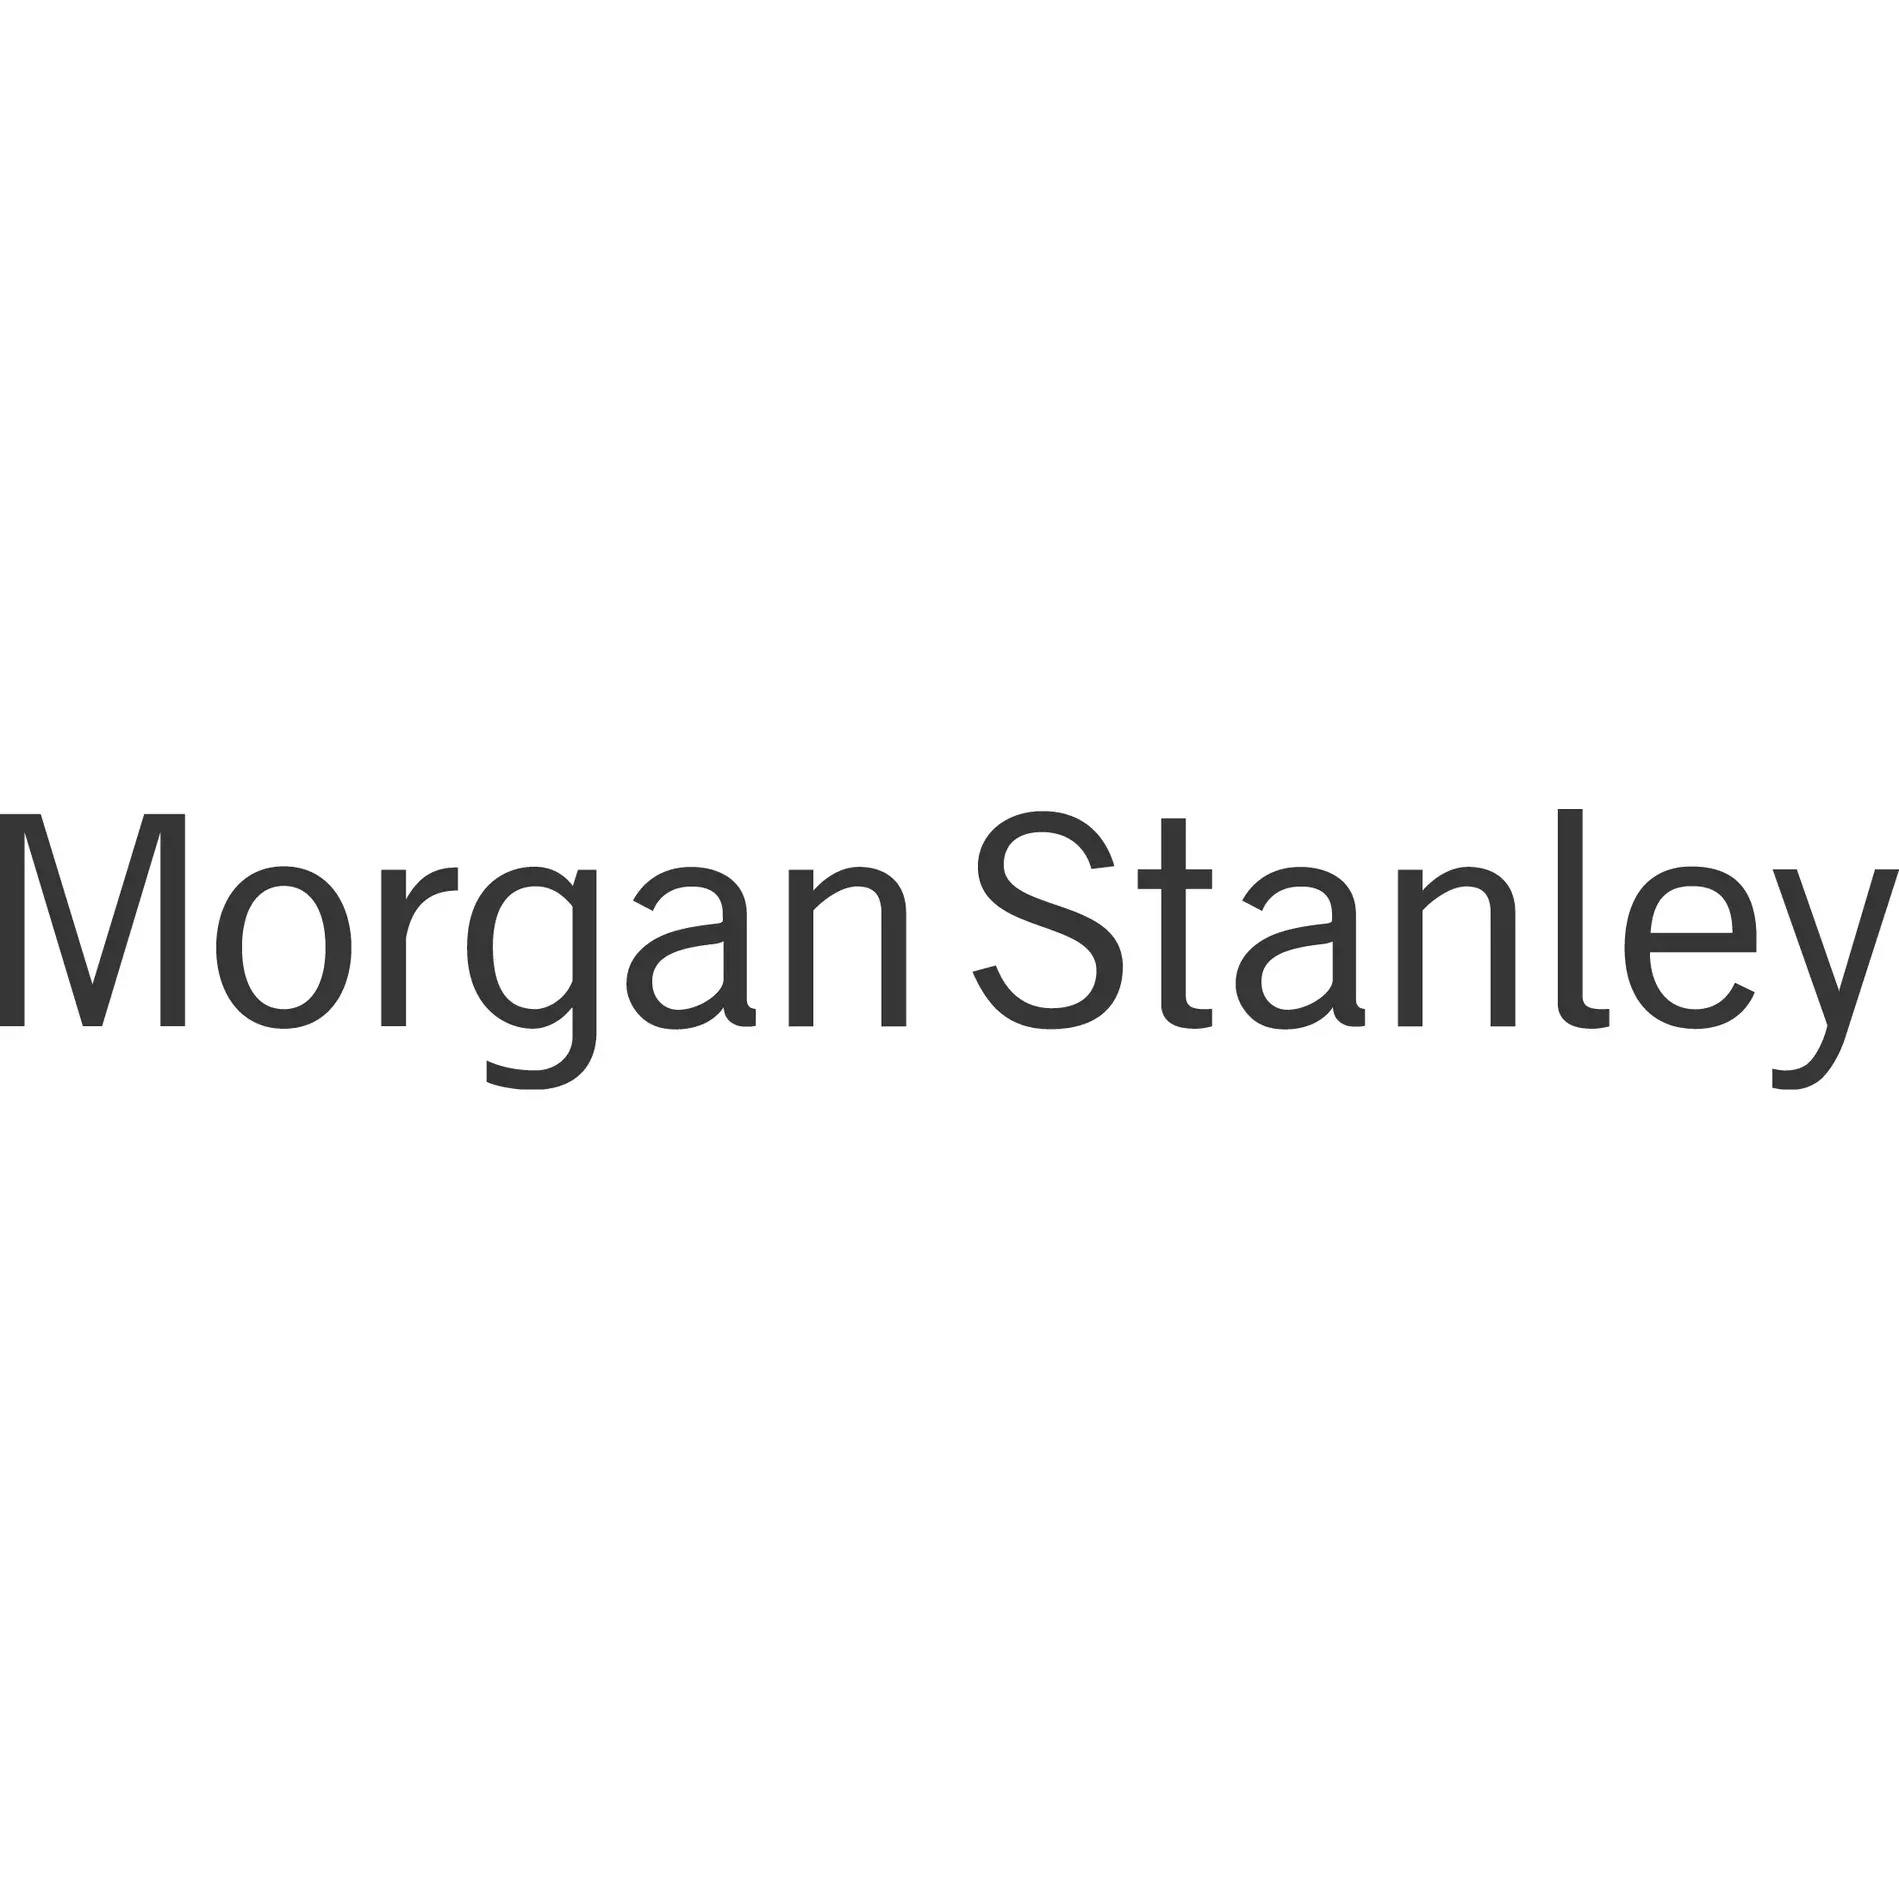 Pancoe Nakovich Vishnubhakat Group - Morgan Stanley | Financial Advisor in Chicago,Illinois